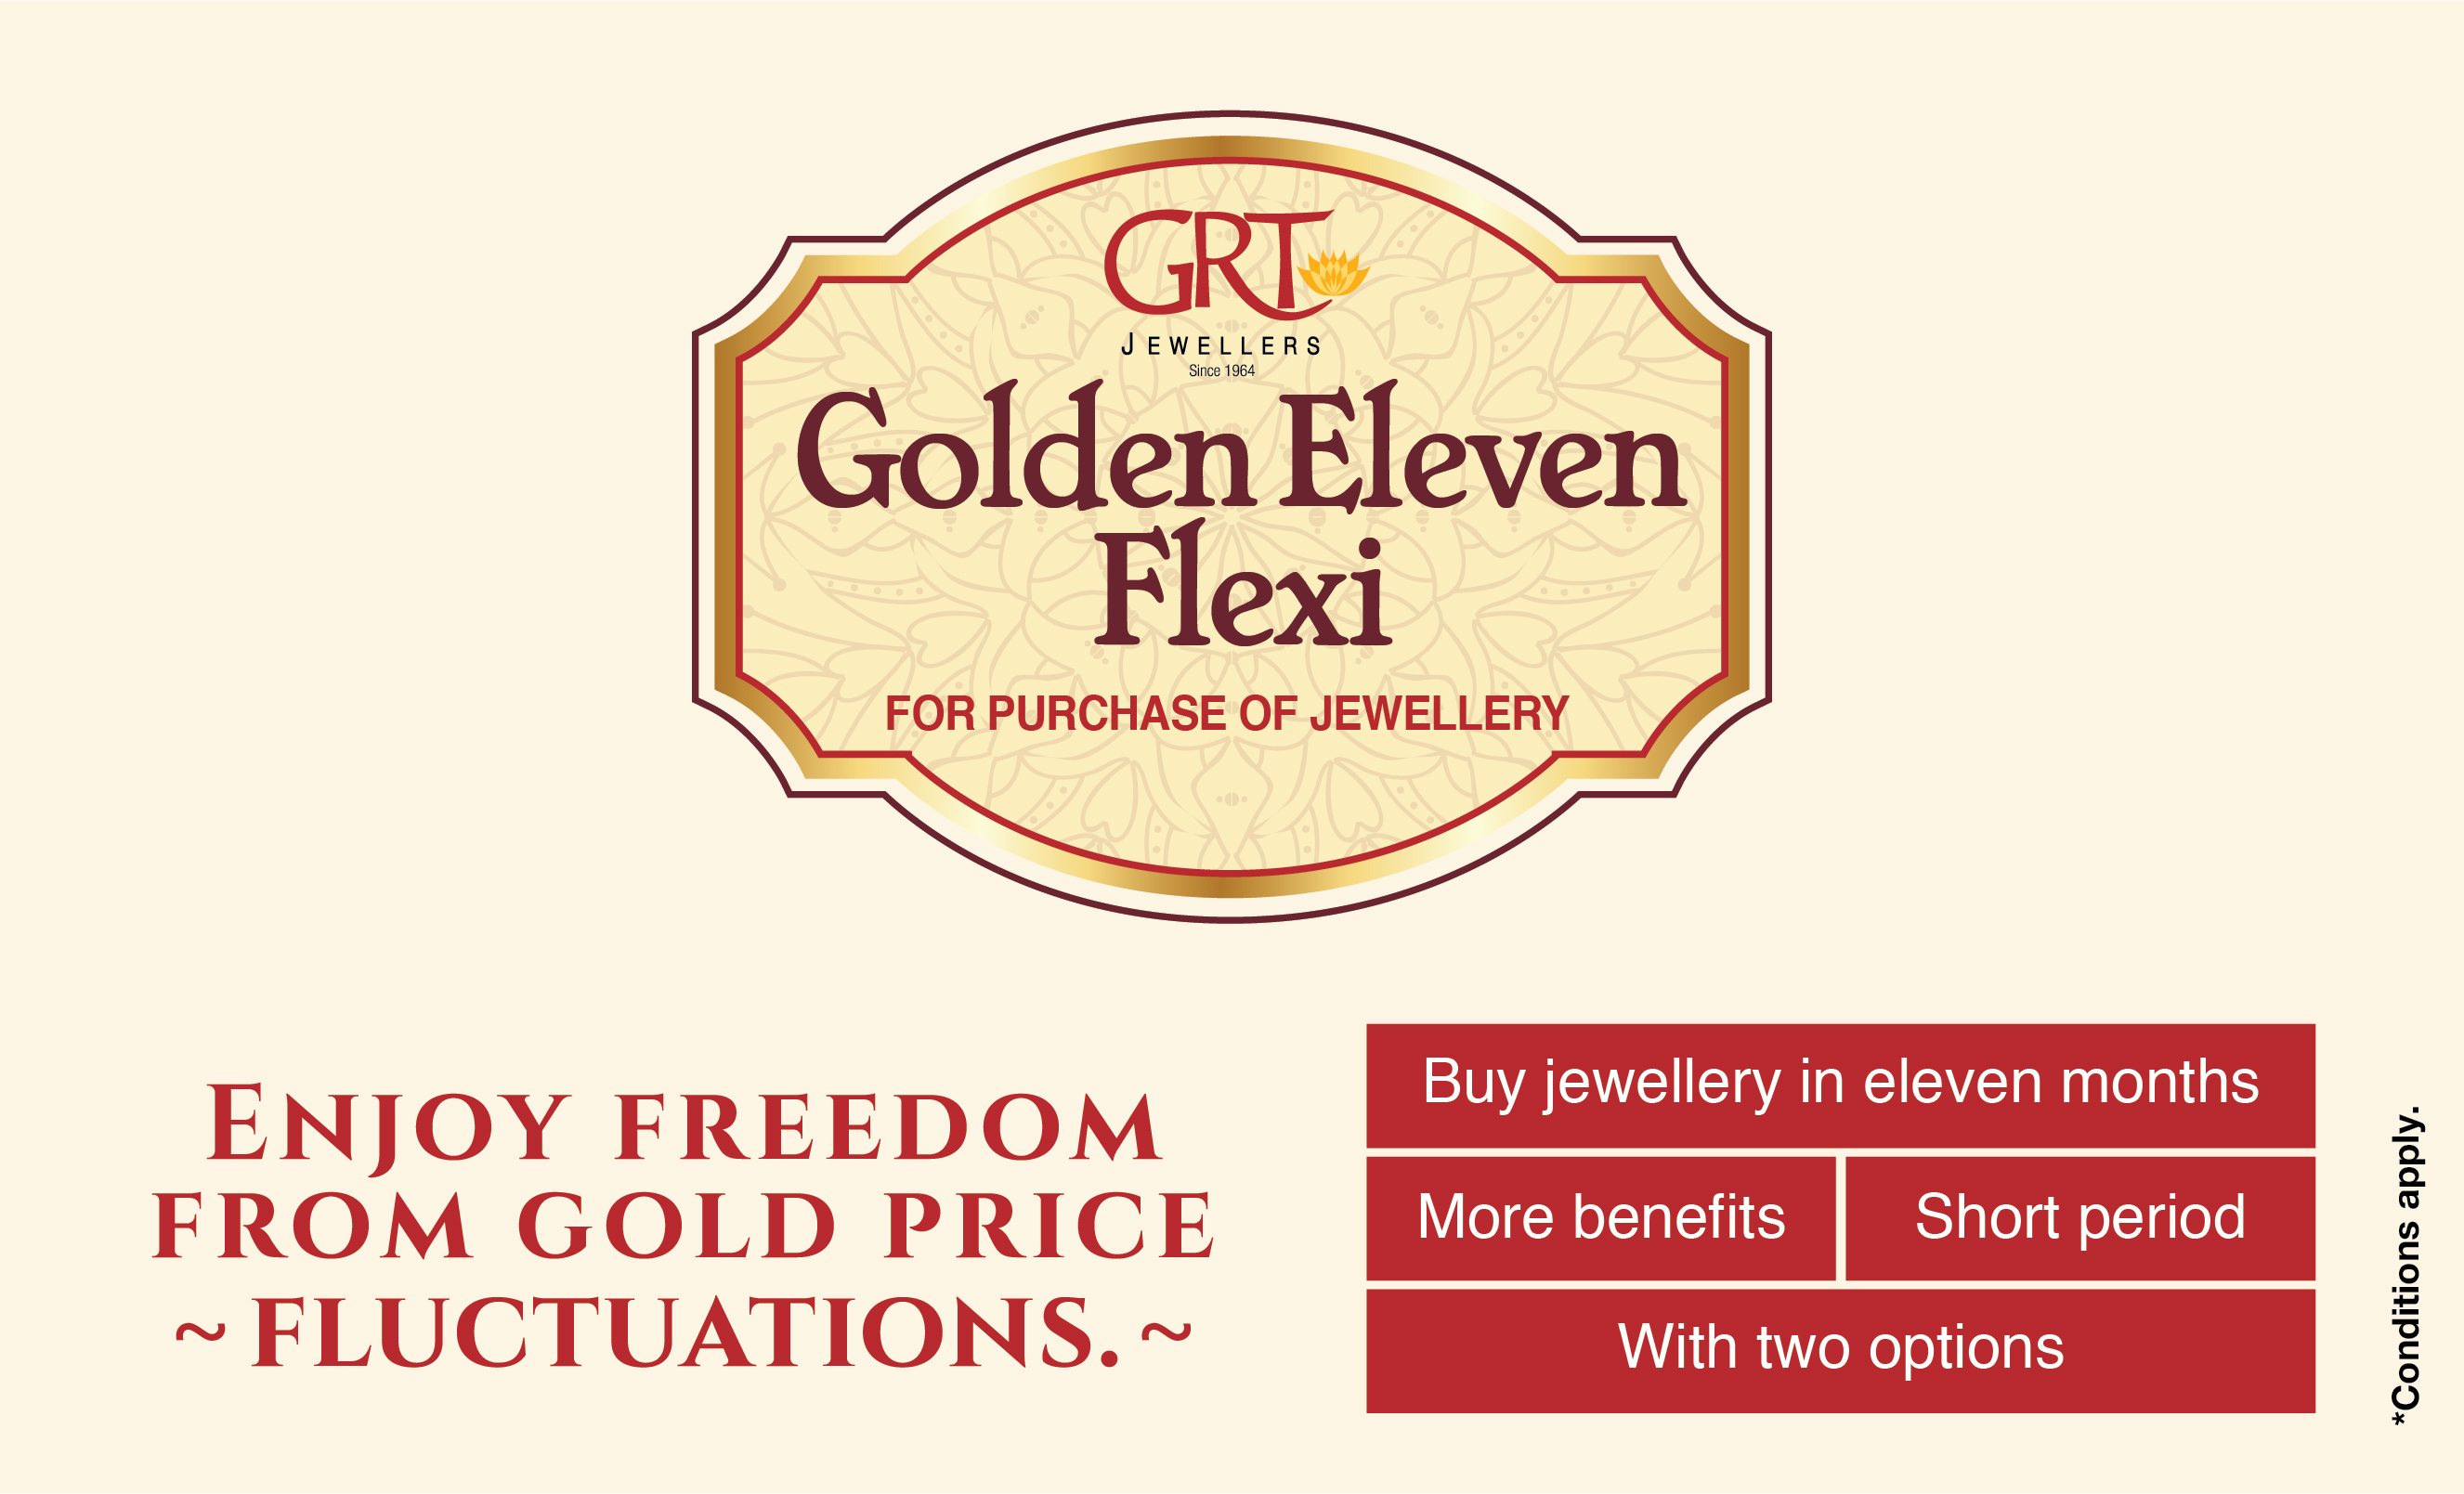 GRT Jewellers Golden Eleven Flexi Plan